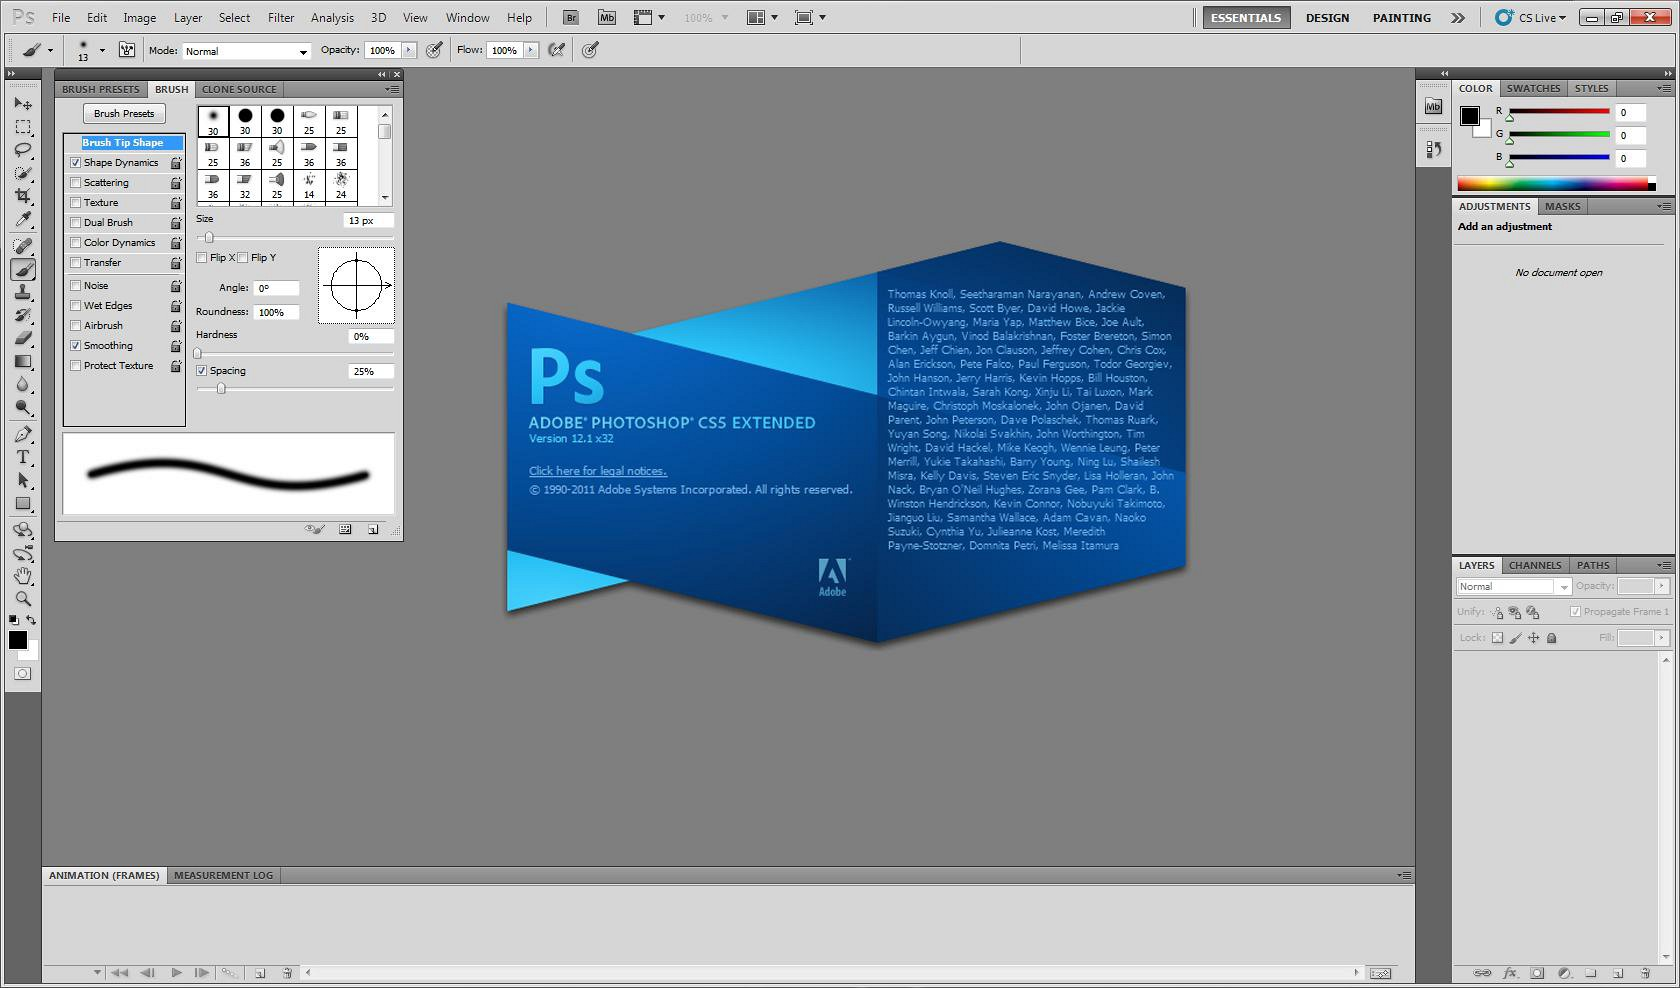 So, How to get Adobe Photoshop CS5 Full Version For Free